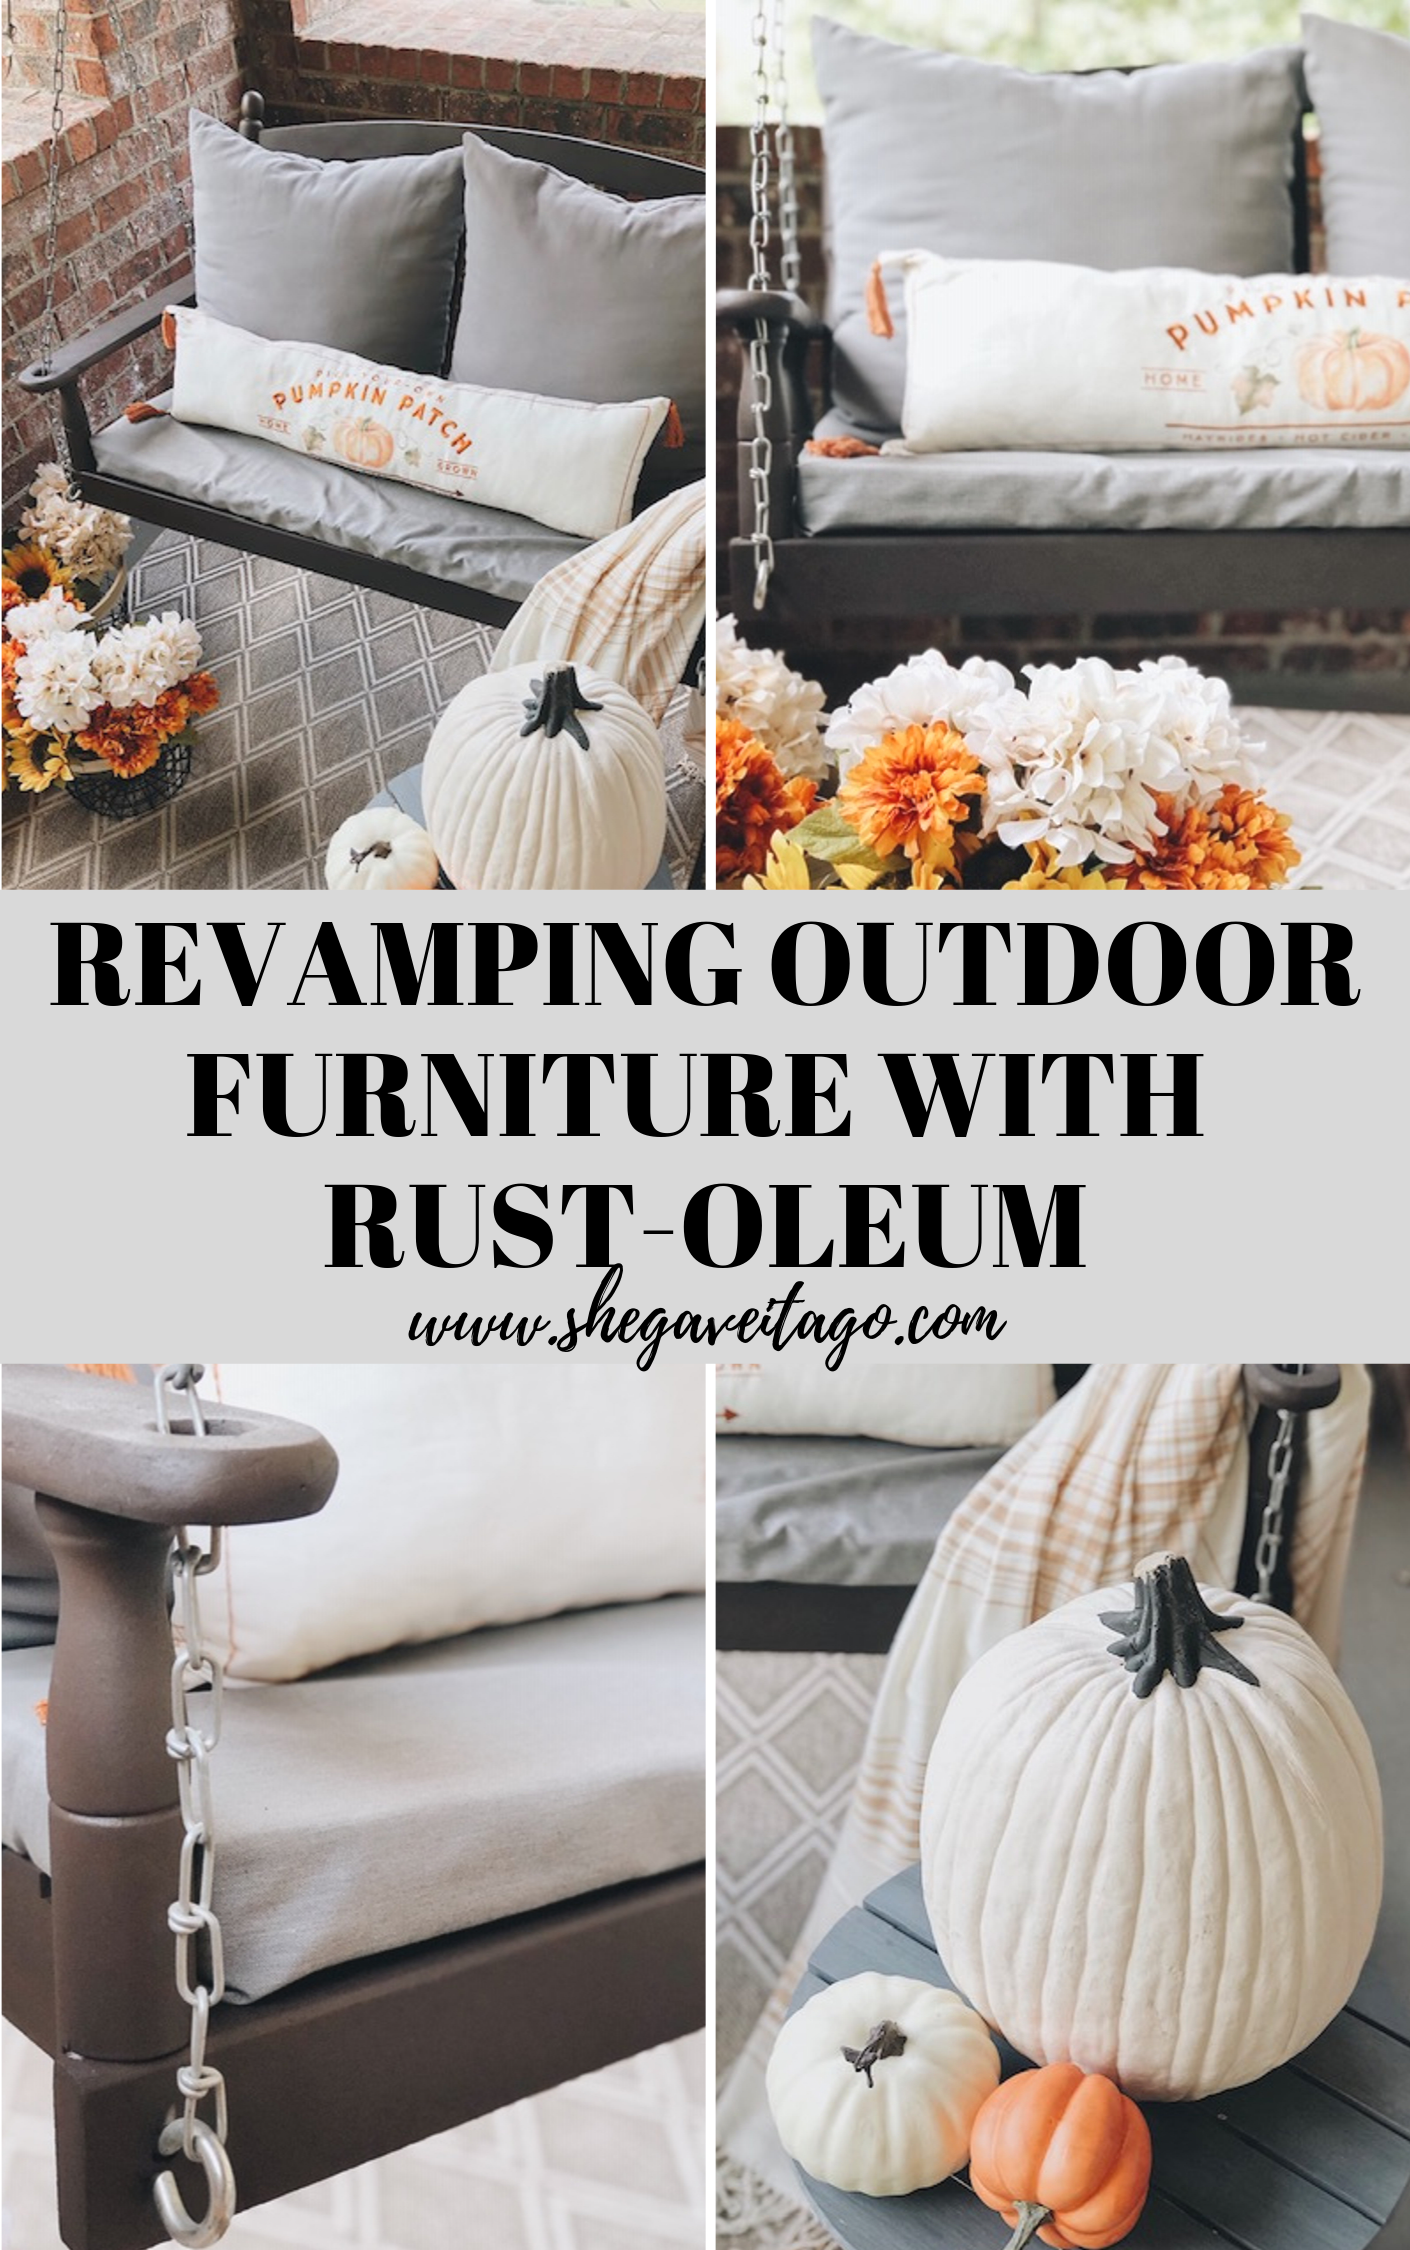 Revamping Outdoor Furniture With Rust-Oleum.png